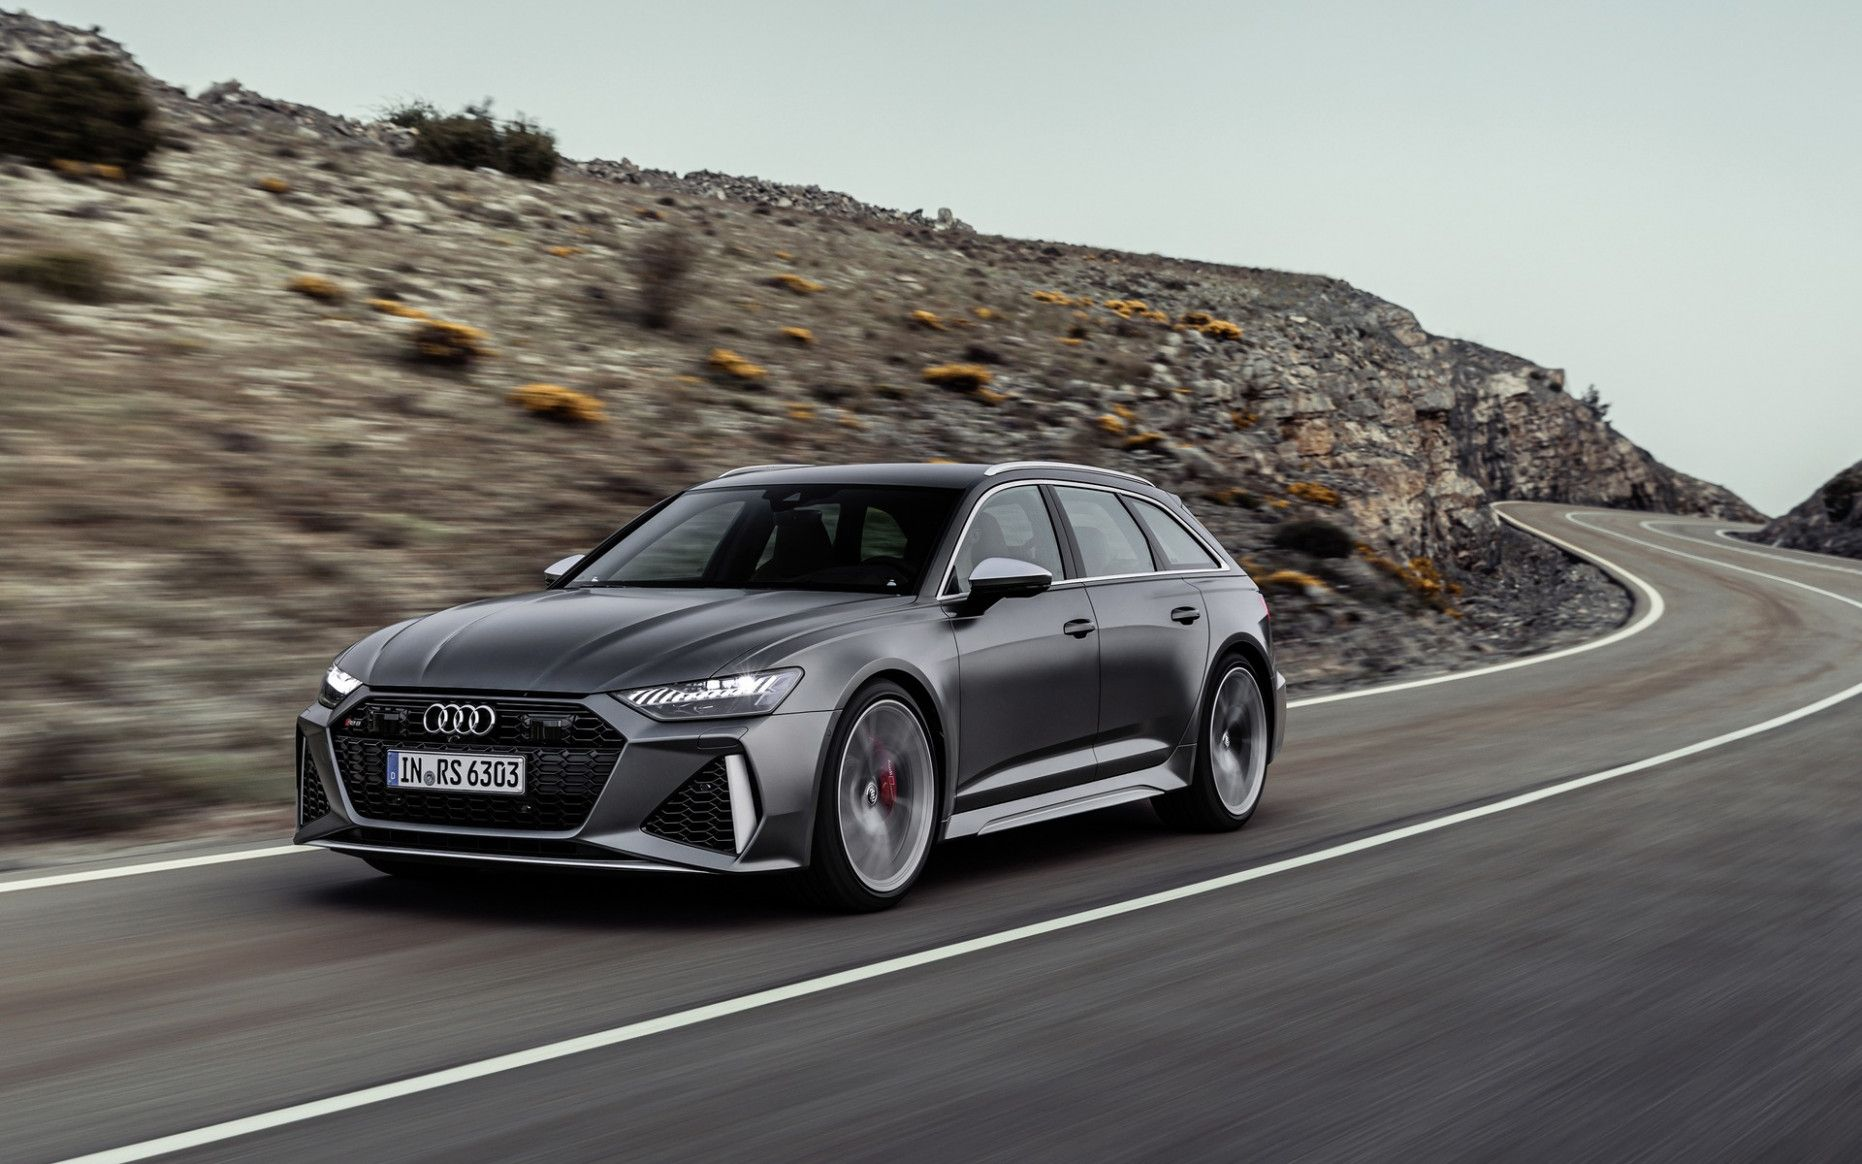 2021 Audi Canada Order Guide History in 2020 | Audi rs6 ...